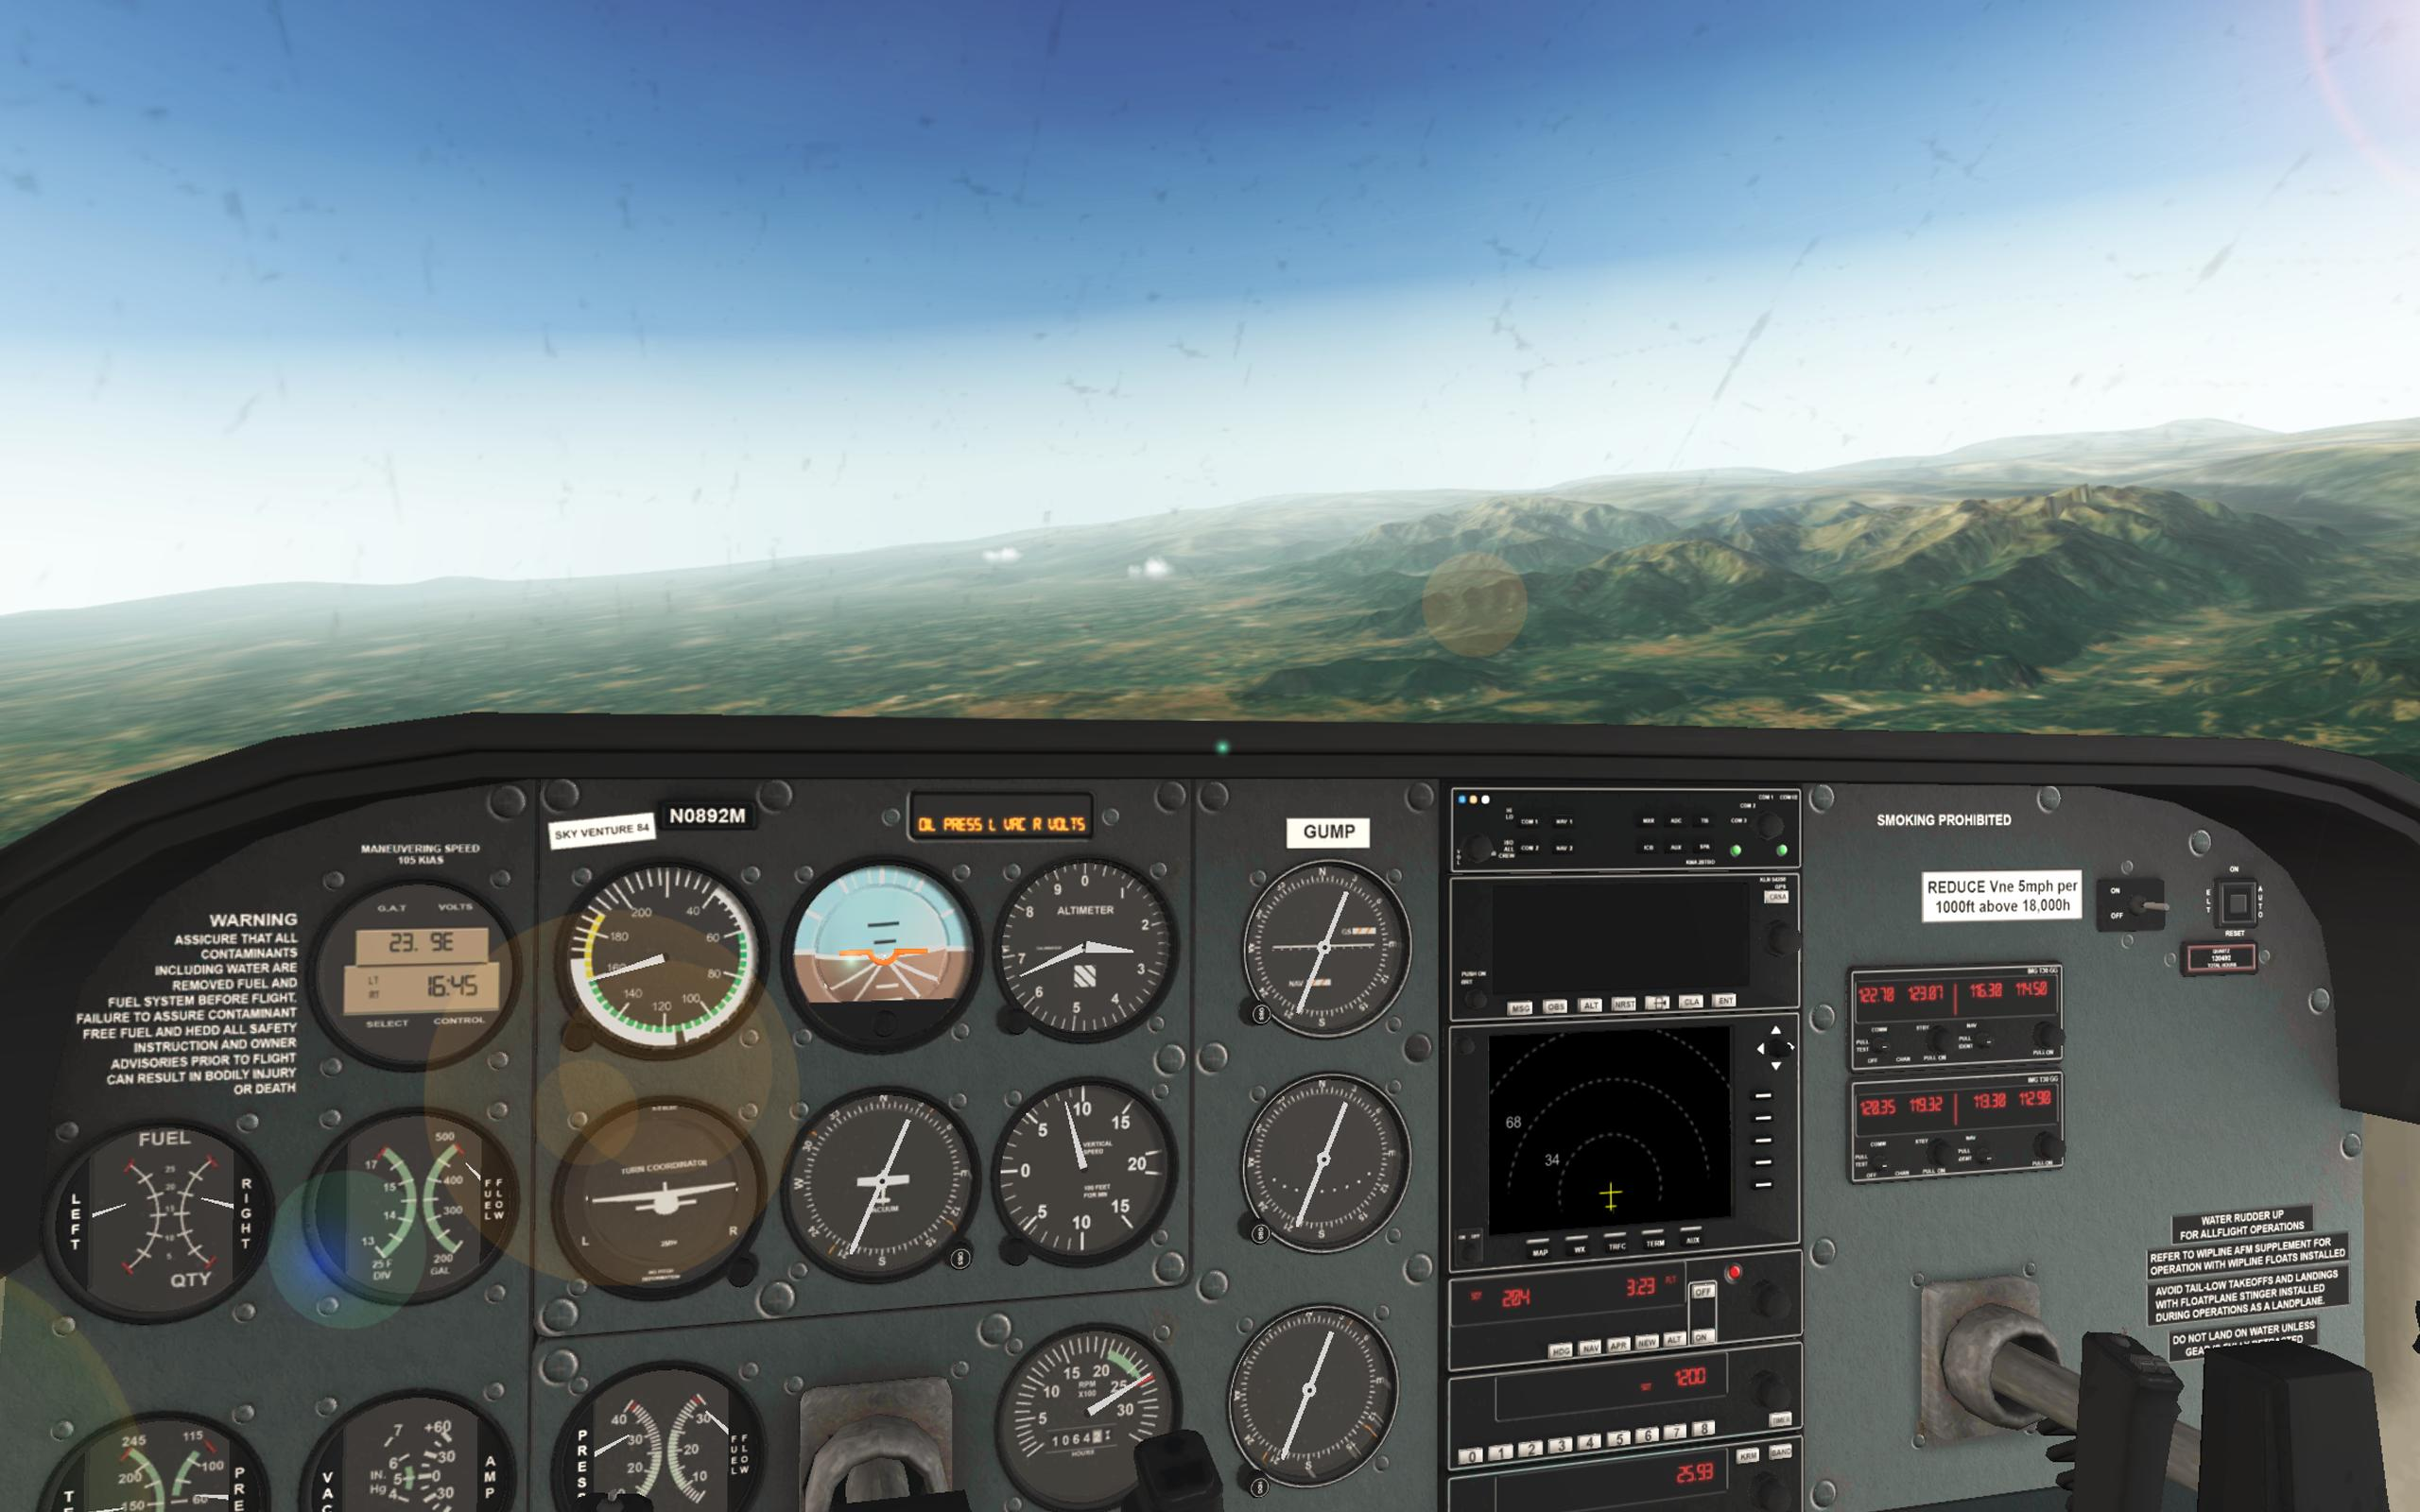 RFS - Real Flight Simulator for Android - APK Download